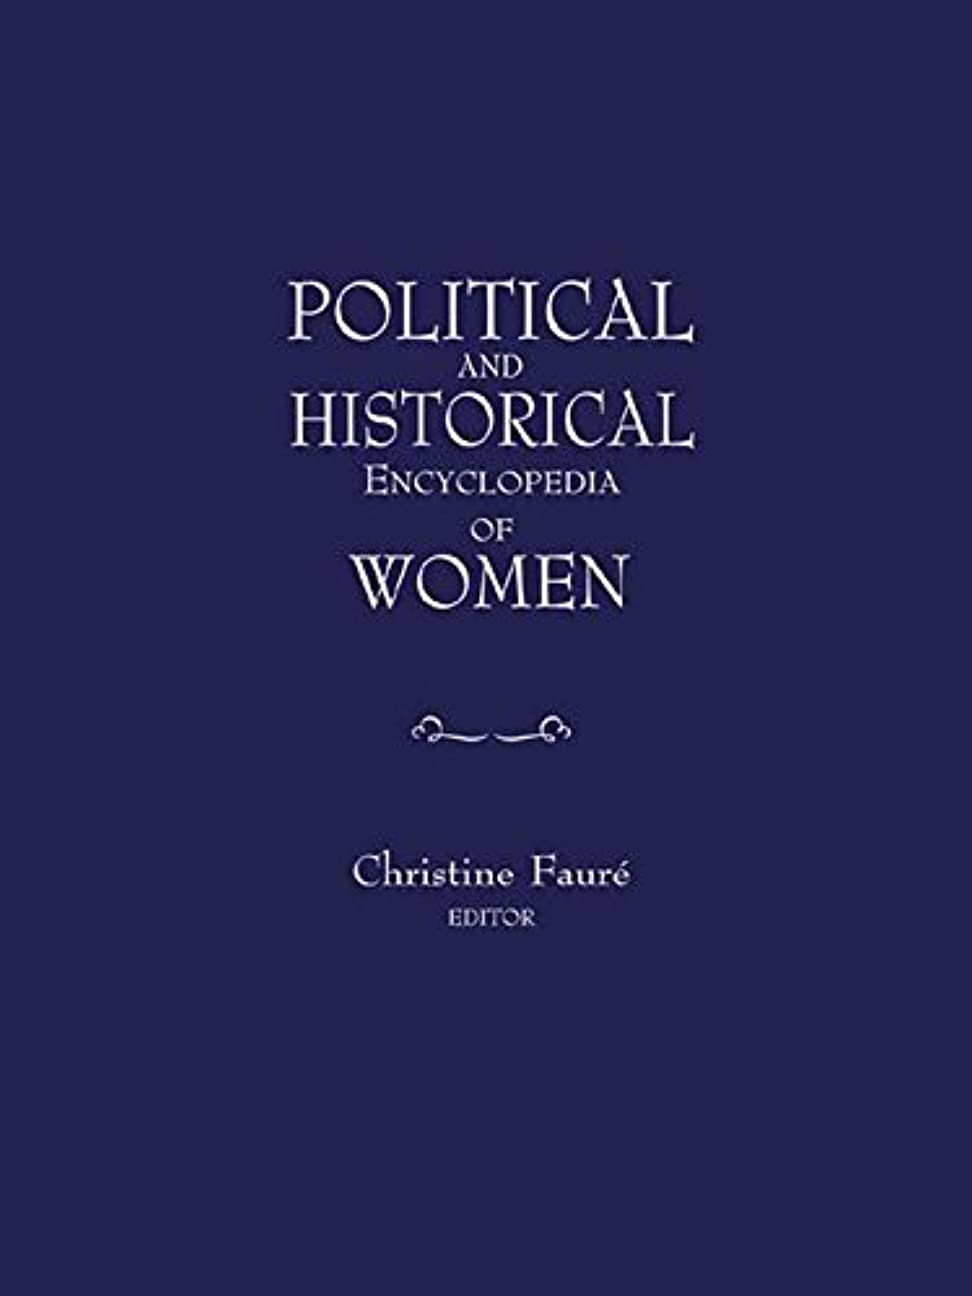 悪化させるシンカン武器Political and Historical Encyclopedia of Women (English Edition)